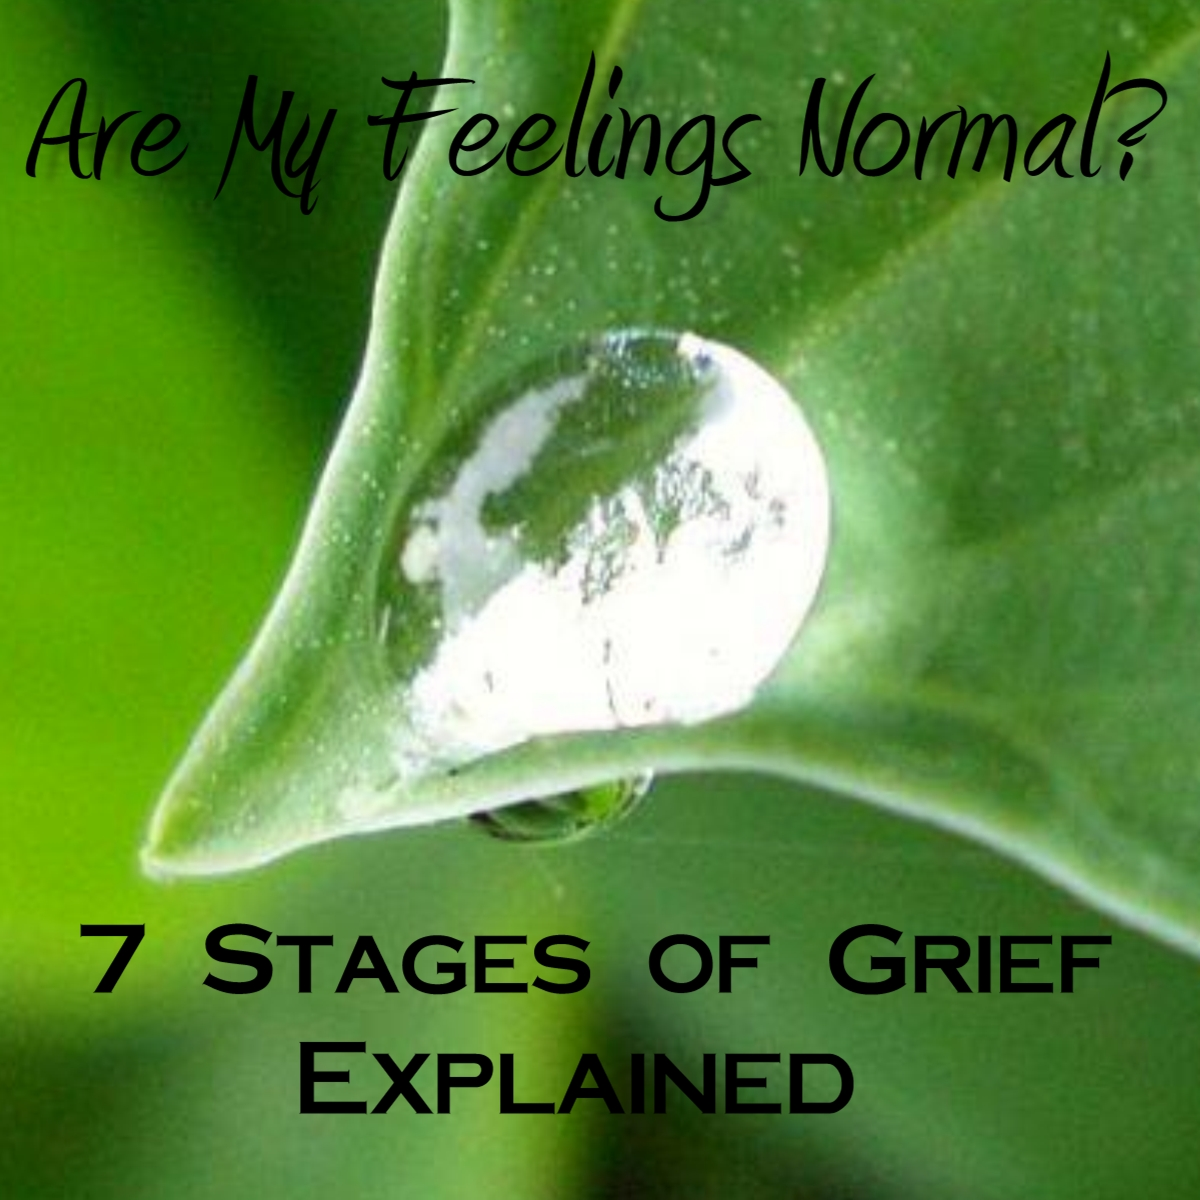 7 stages of grieving The 7 stages of grief here is the grief model we call the 7 stages of grief: shock & denial-you will probably react to learning of the loss with numbed disbelief you may deny the reality of the loss at some level, in order to avoid the pain shock provides emotional protection from being overwhelmed all at once this may last for weeks.